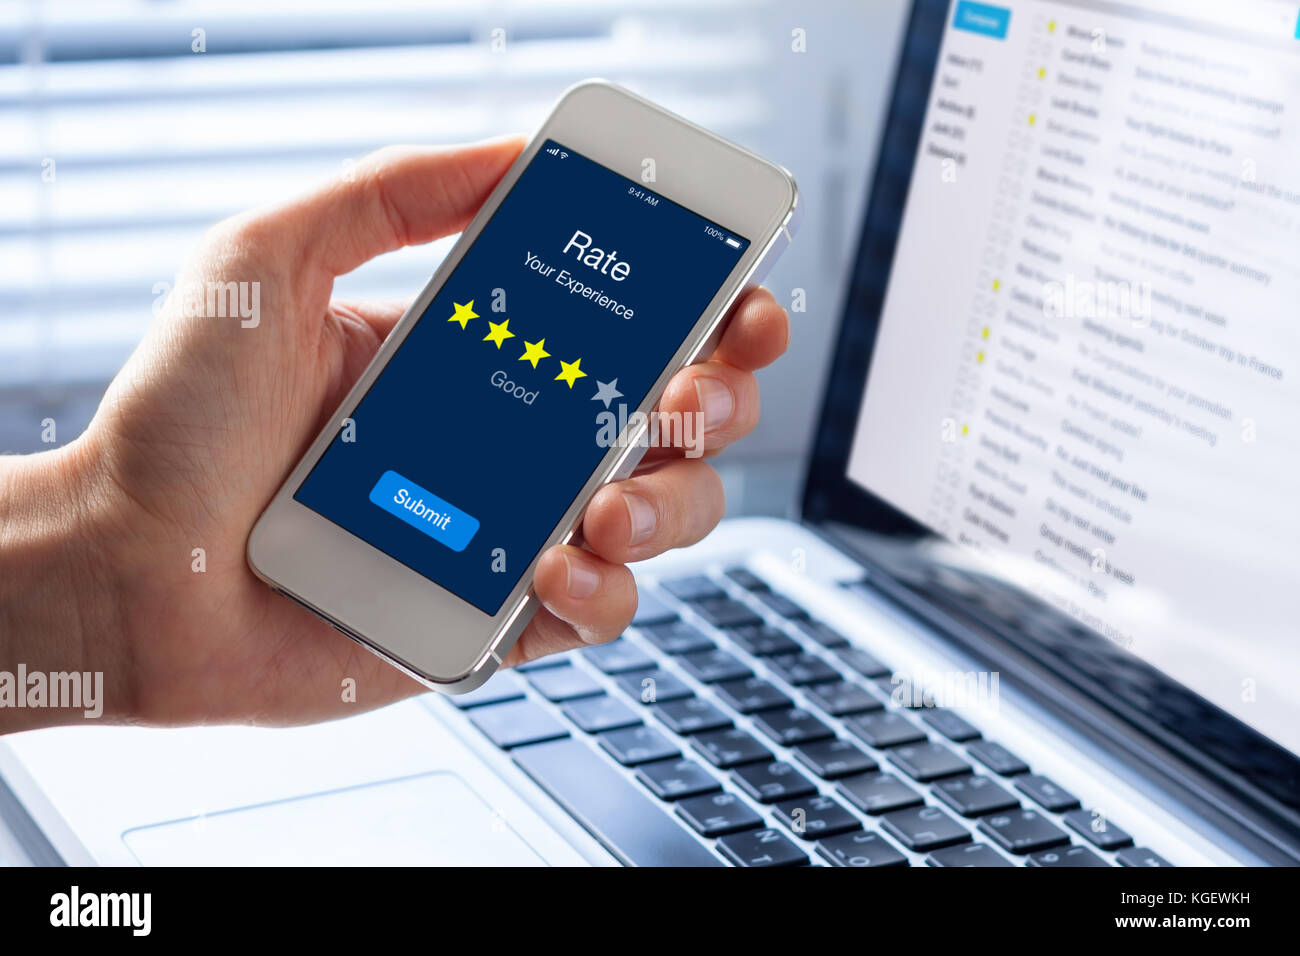 Person rating his experience with 4 stars on smartphone app screen, concept about online customer satisfaction feedback - Stock Image